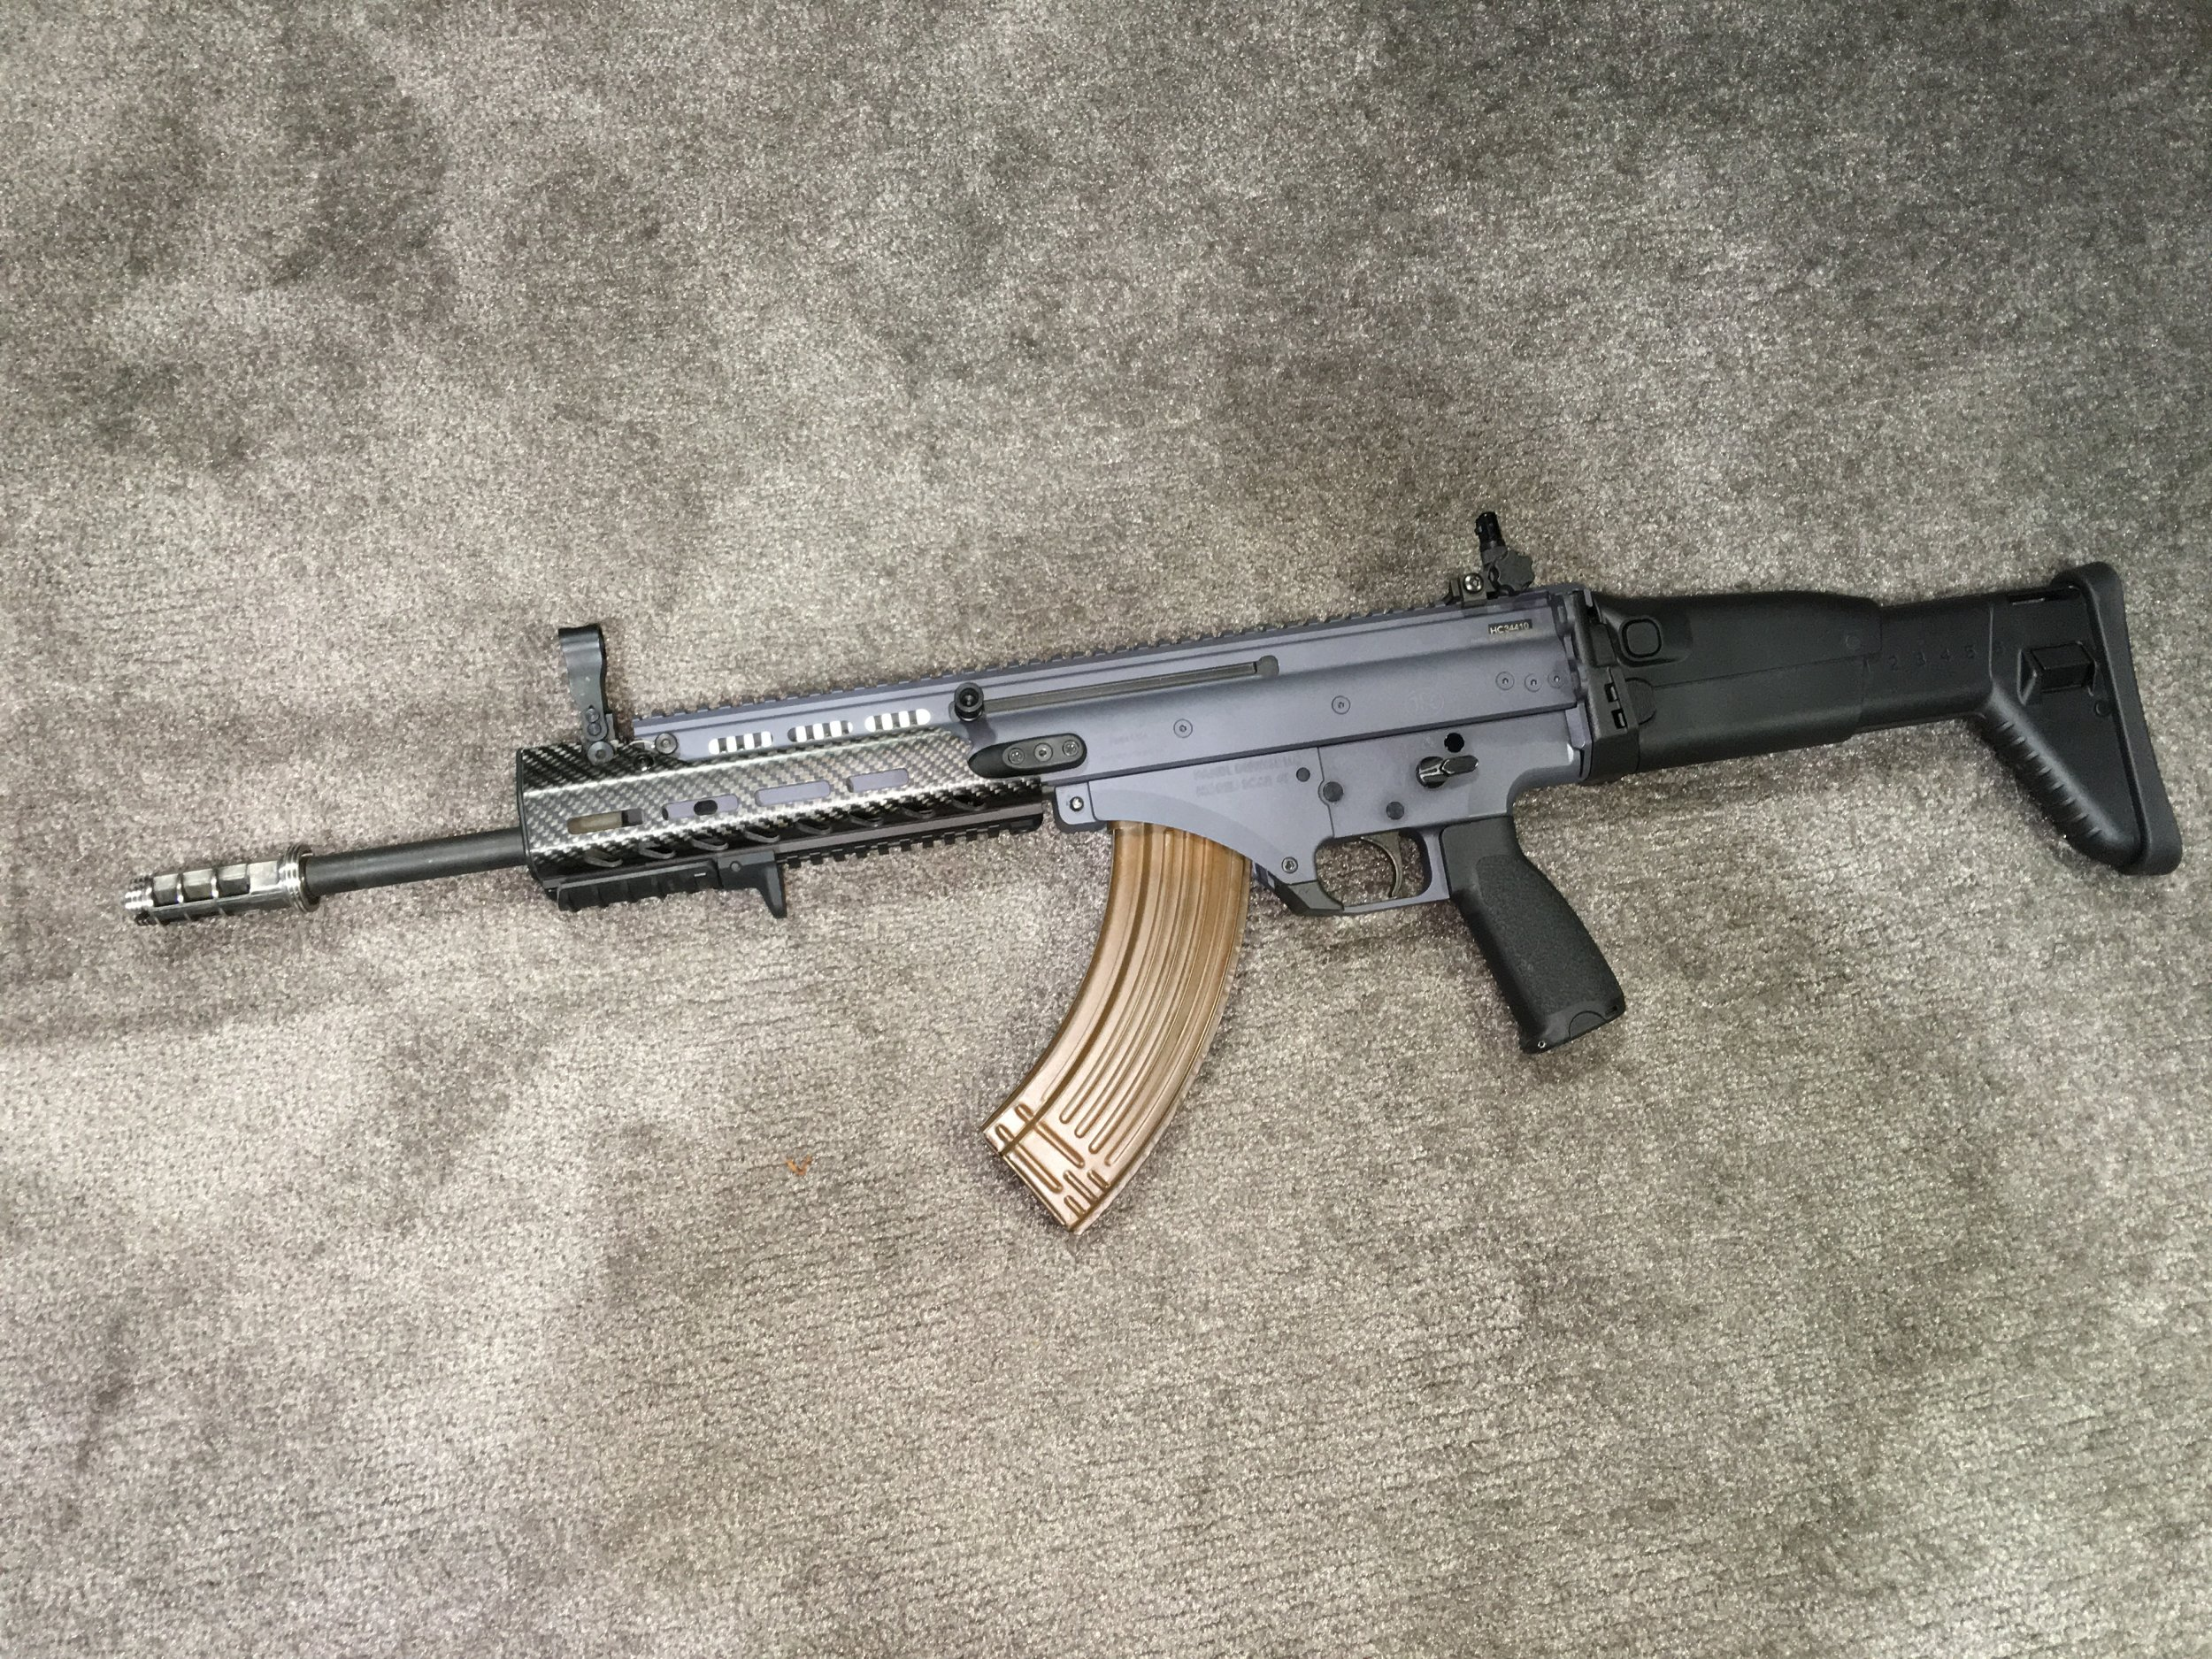 Ken Crane Firearms & Accessories : Handl defense modular aftermarket fn scar mk and